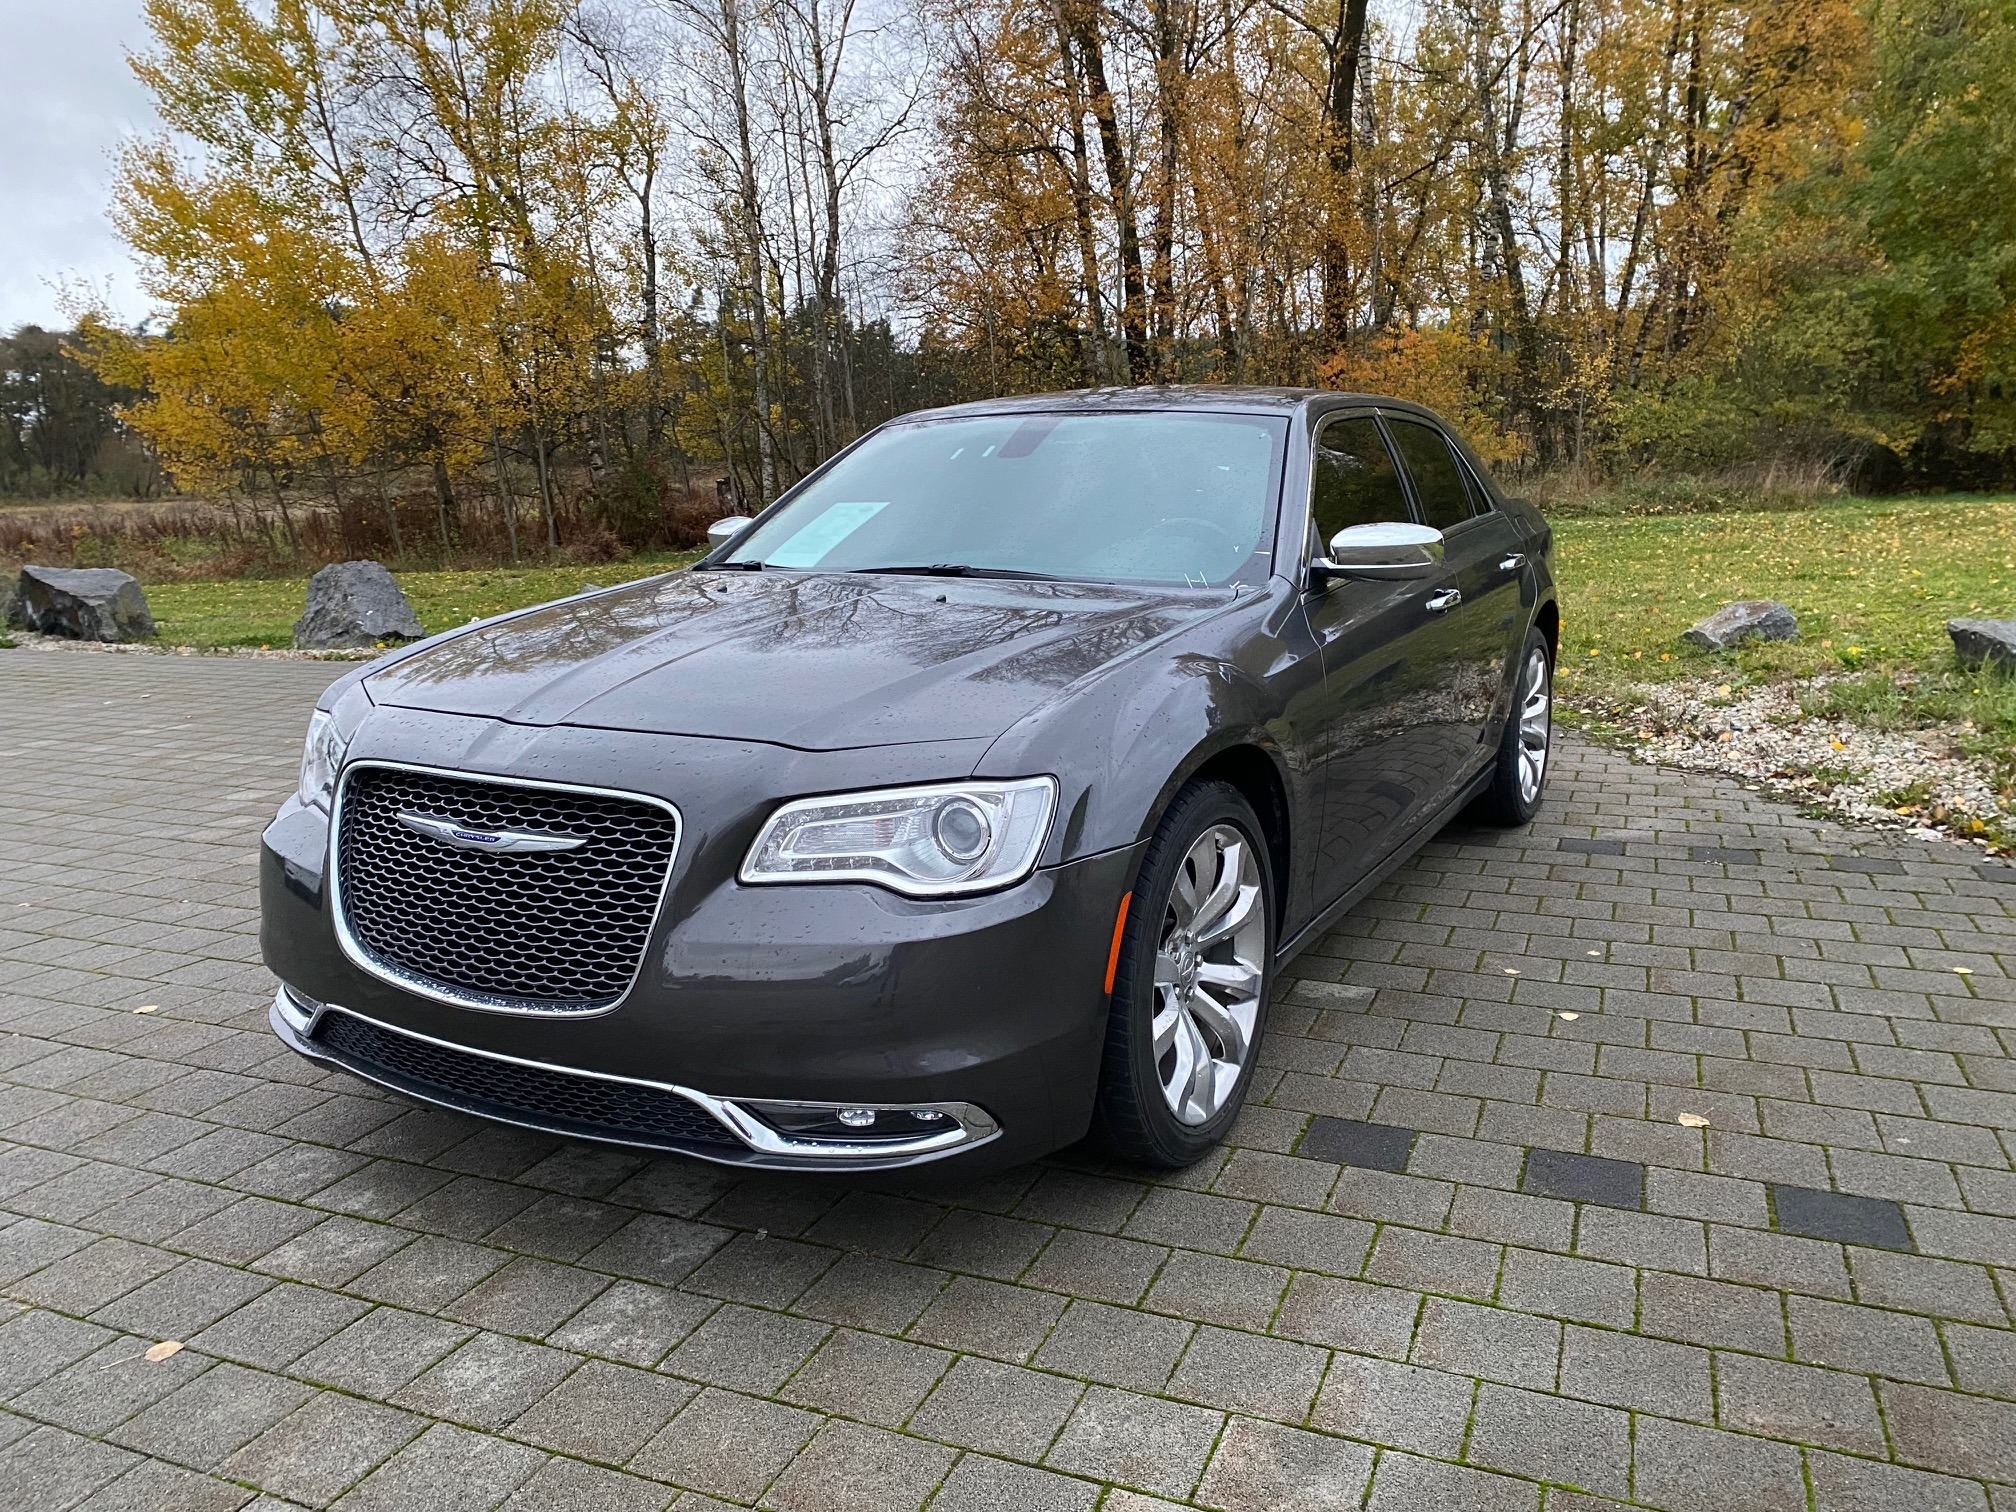 *New Arrival* </br>2020 Chrysler 300 Limited</br>as low as </br>$219 per paycheck